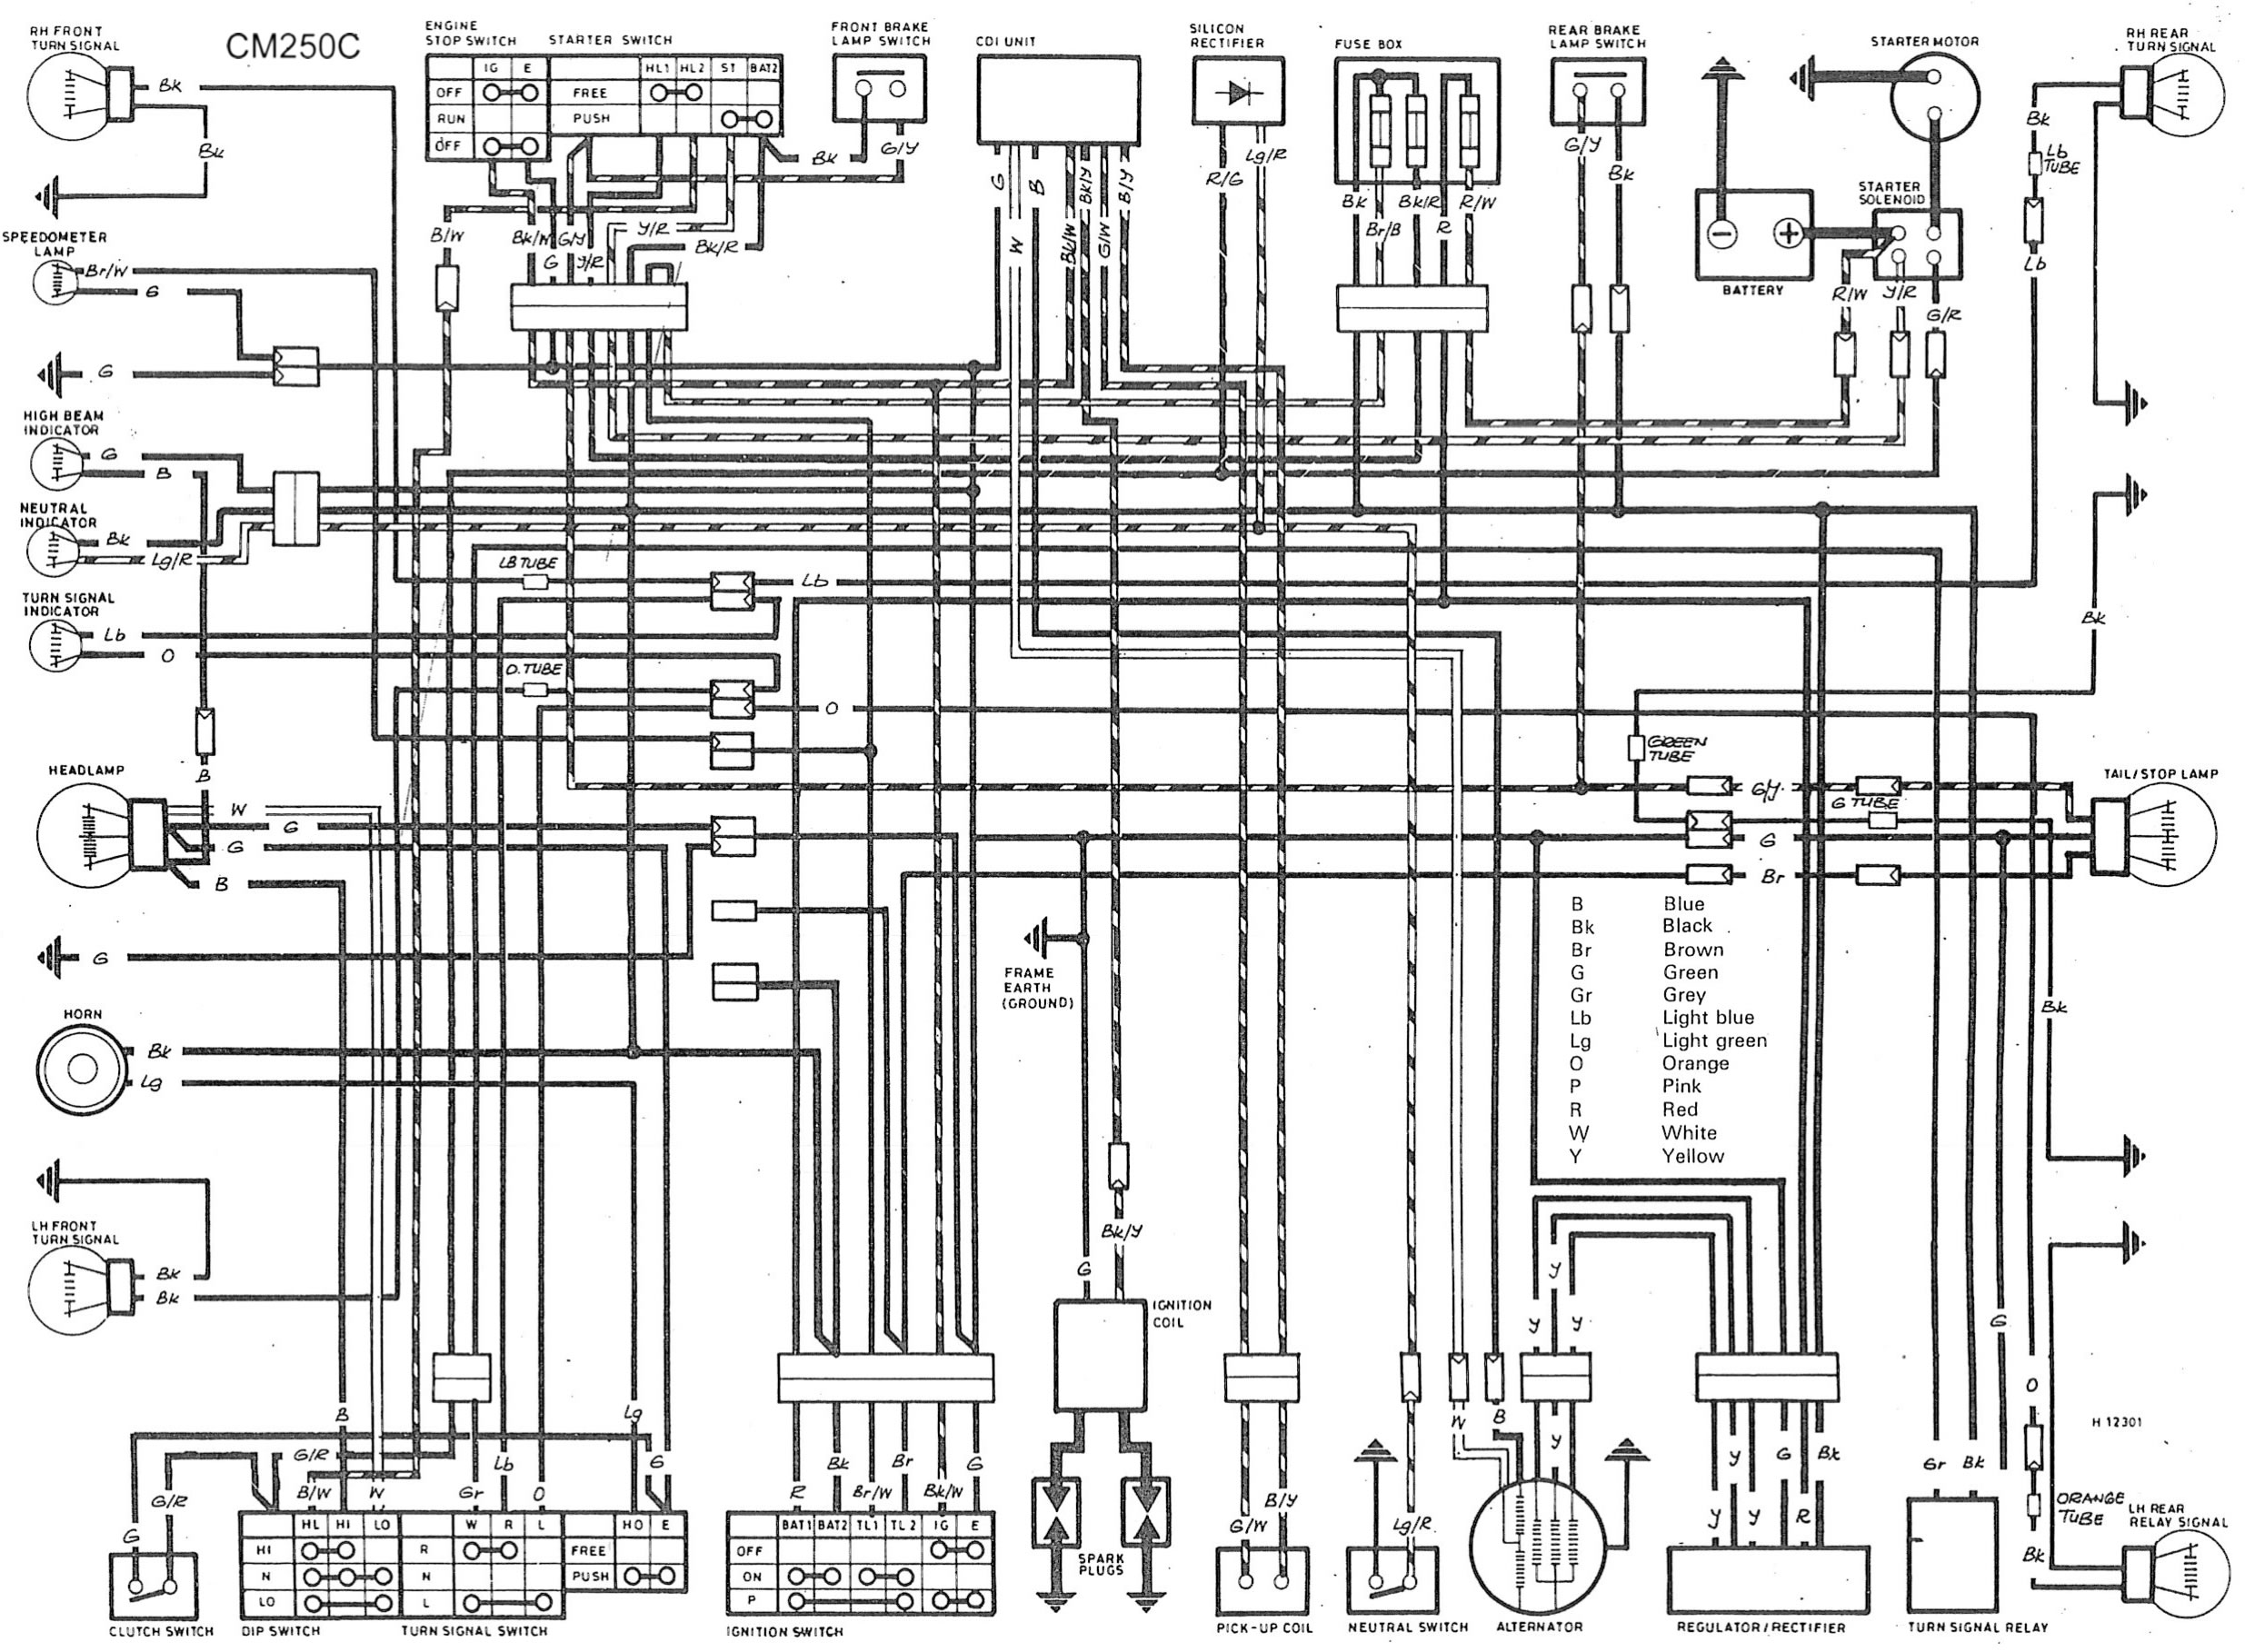 wirediagram honda cm 250 custom motorcycle (cm250c) 1984 honda nighthawk 650 wiring diagram at bayanpartner.co